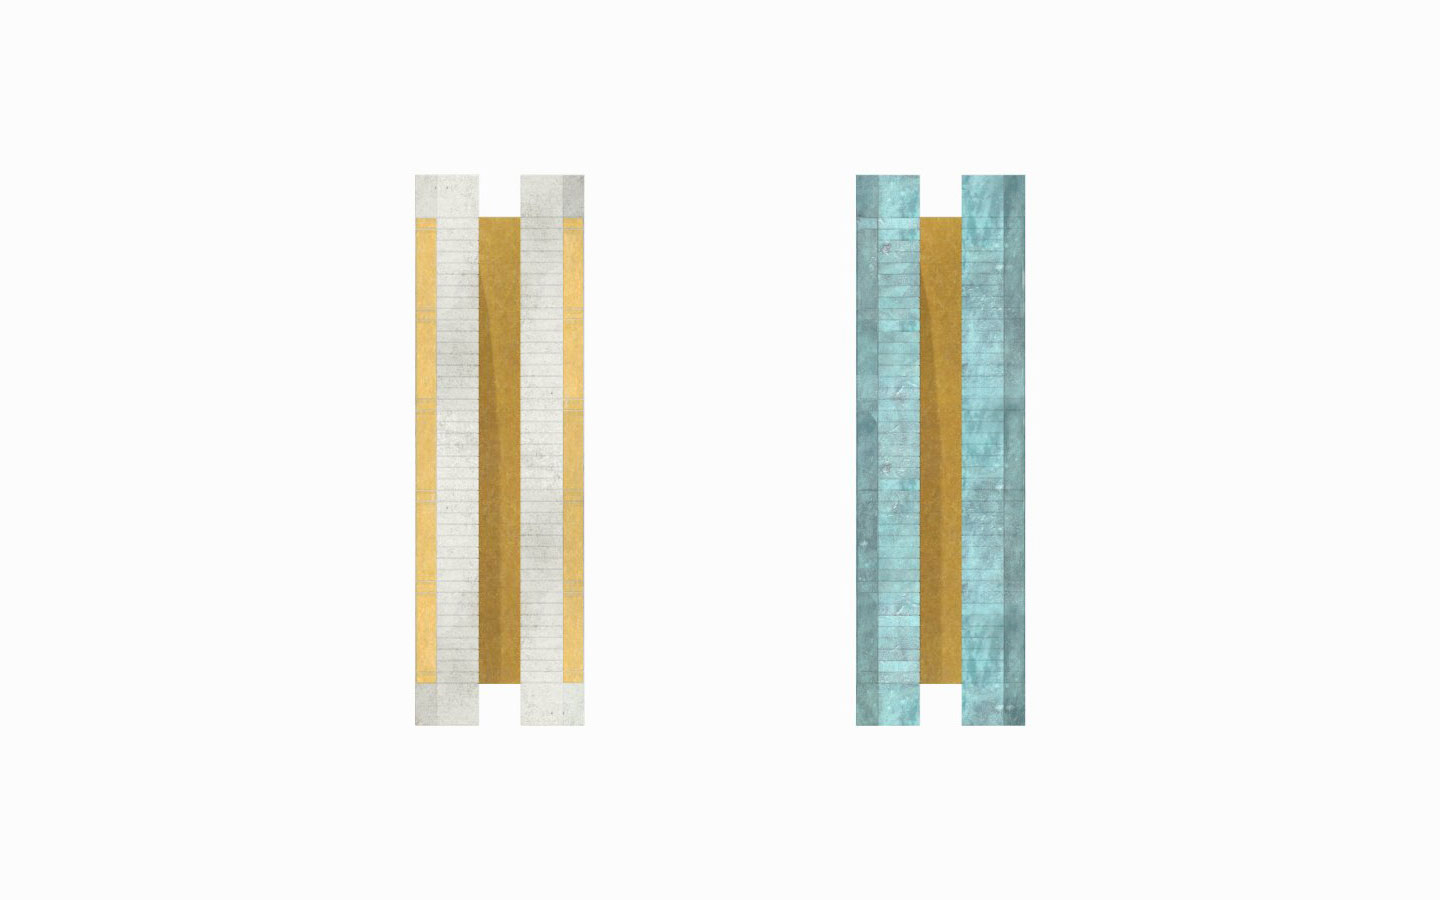 Brass wall lights designed by Studioloop aged brass with aged silver finish and aged brass and verdigris fine